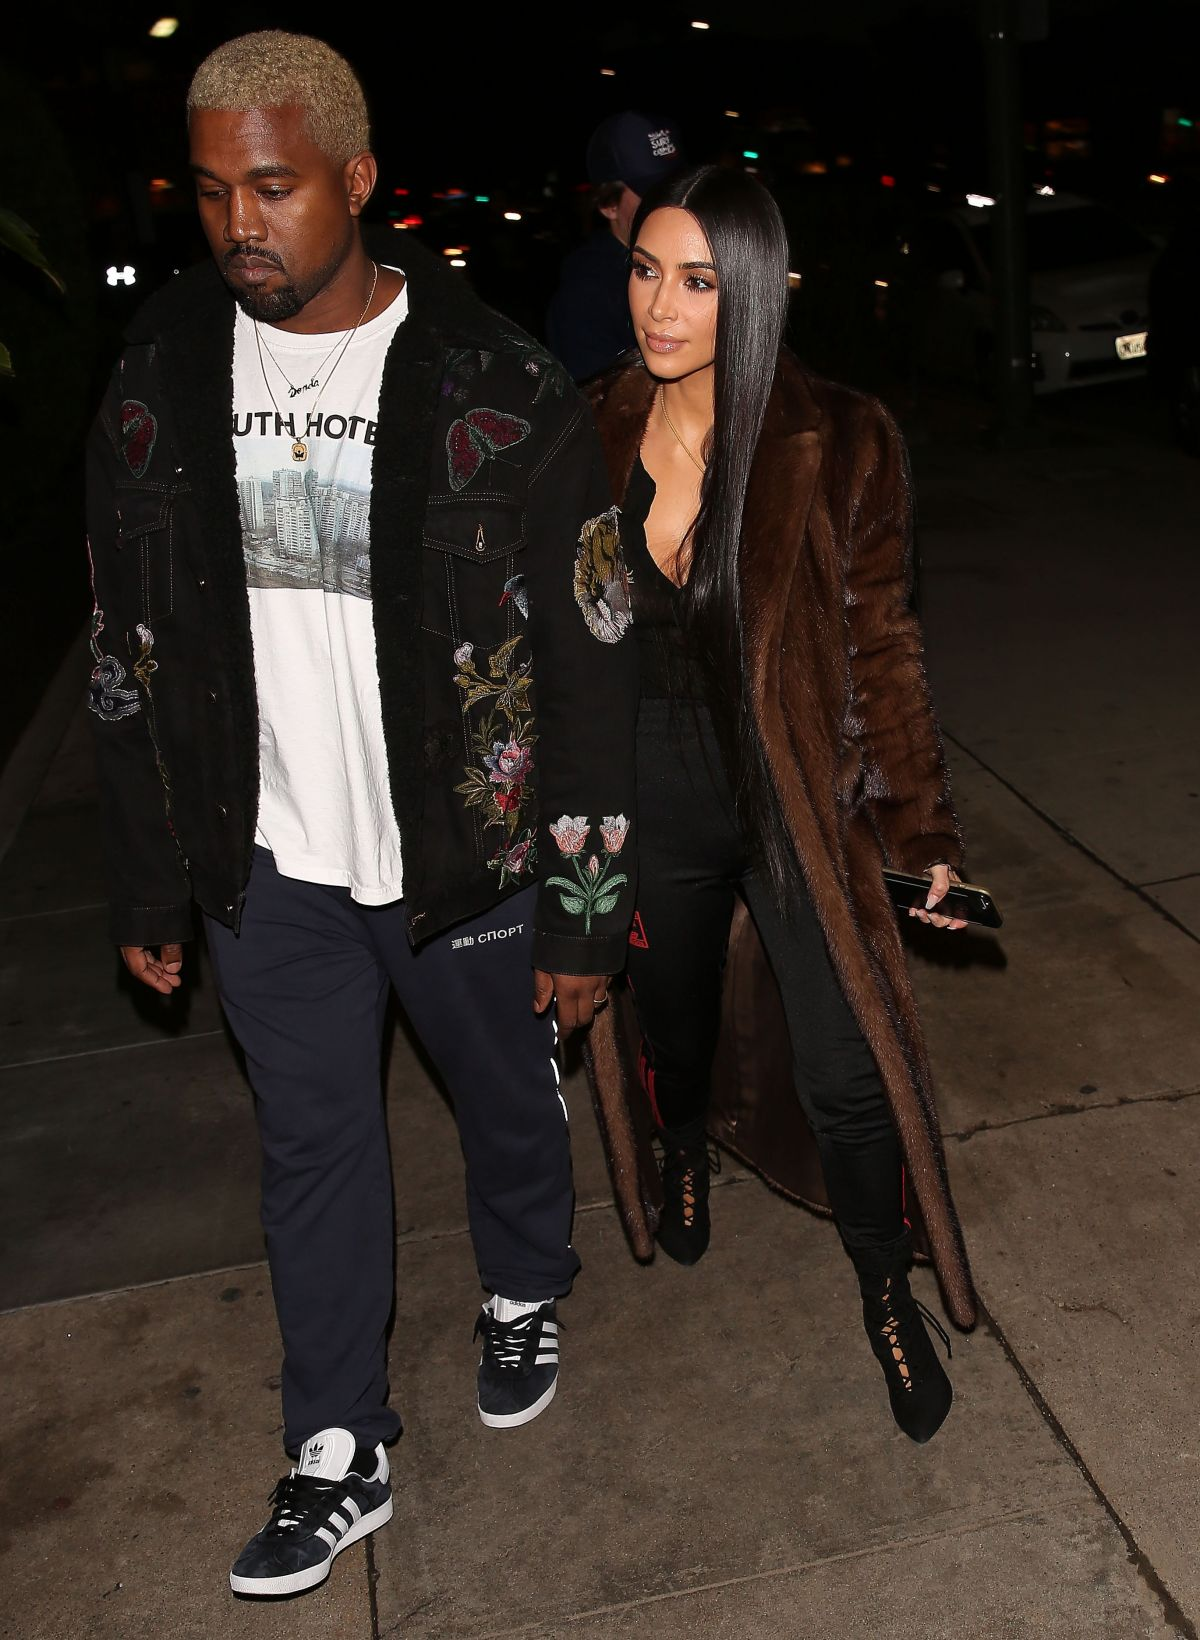 KIM KARDASHIAN and Kanye West Out for Dinner in Los Angeles 02/18/2017